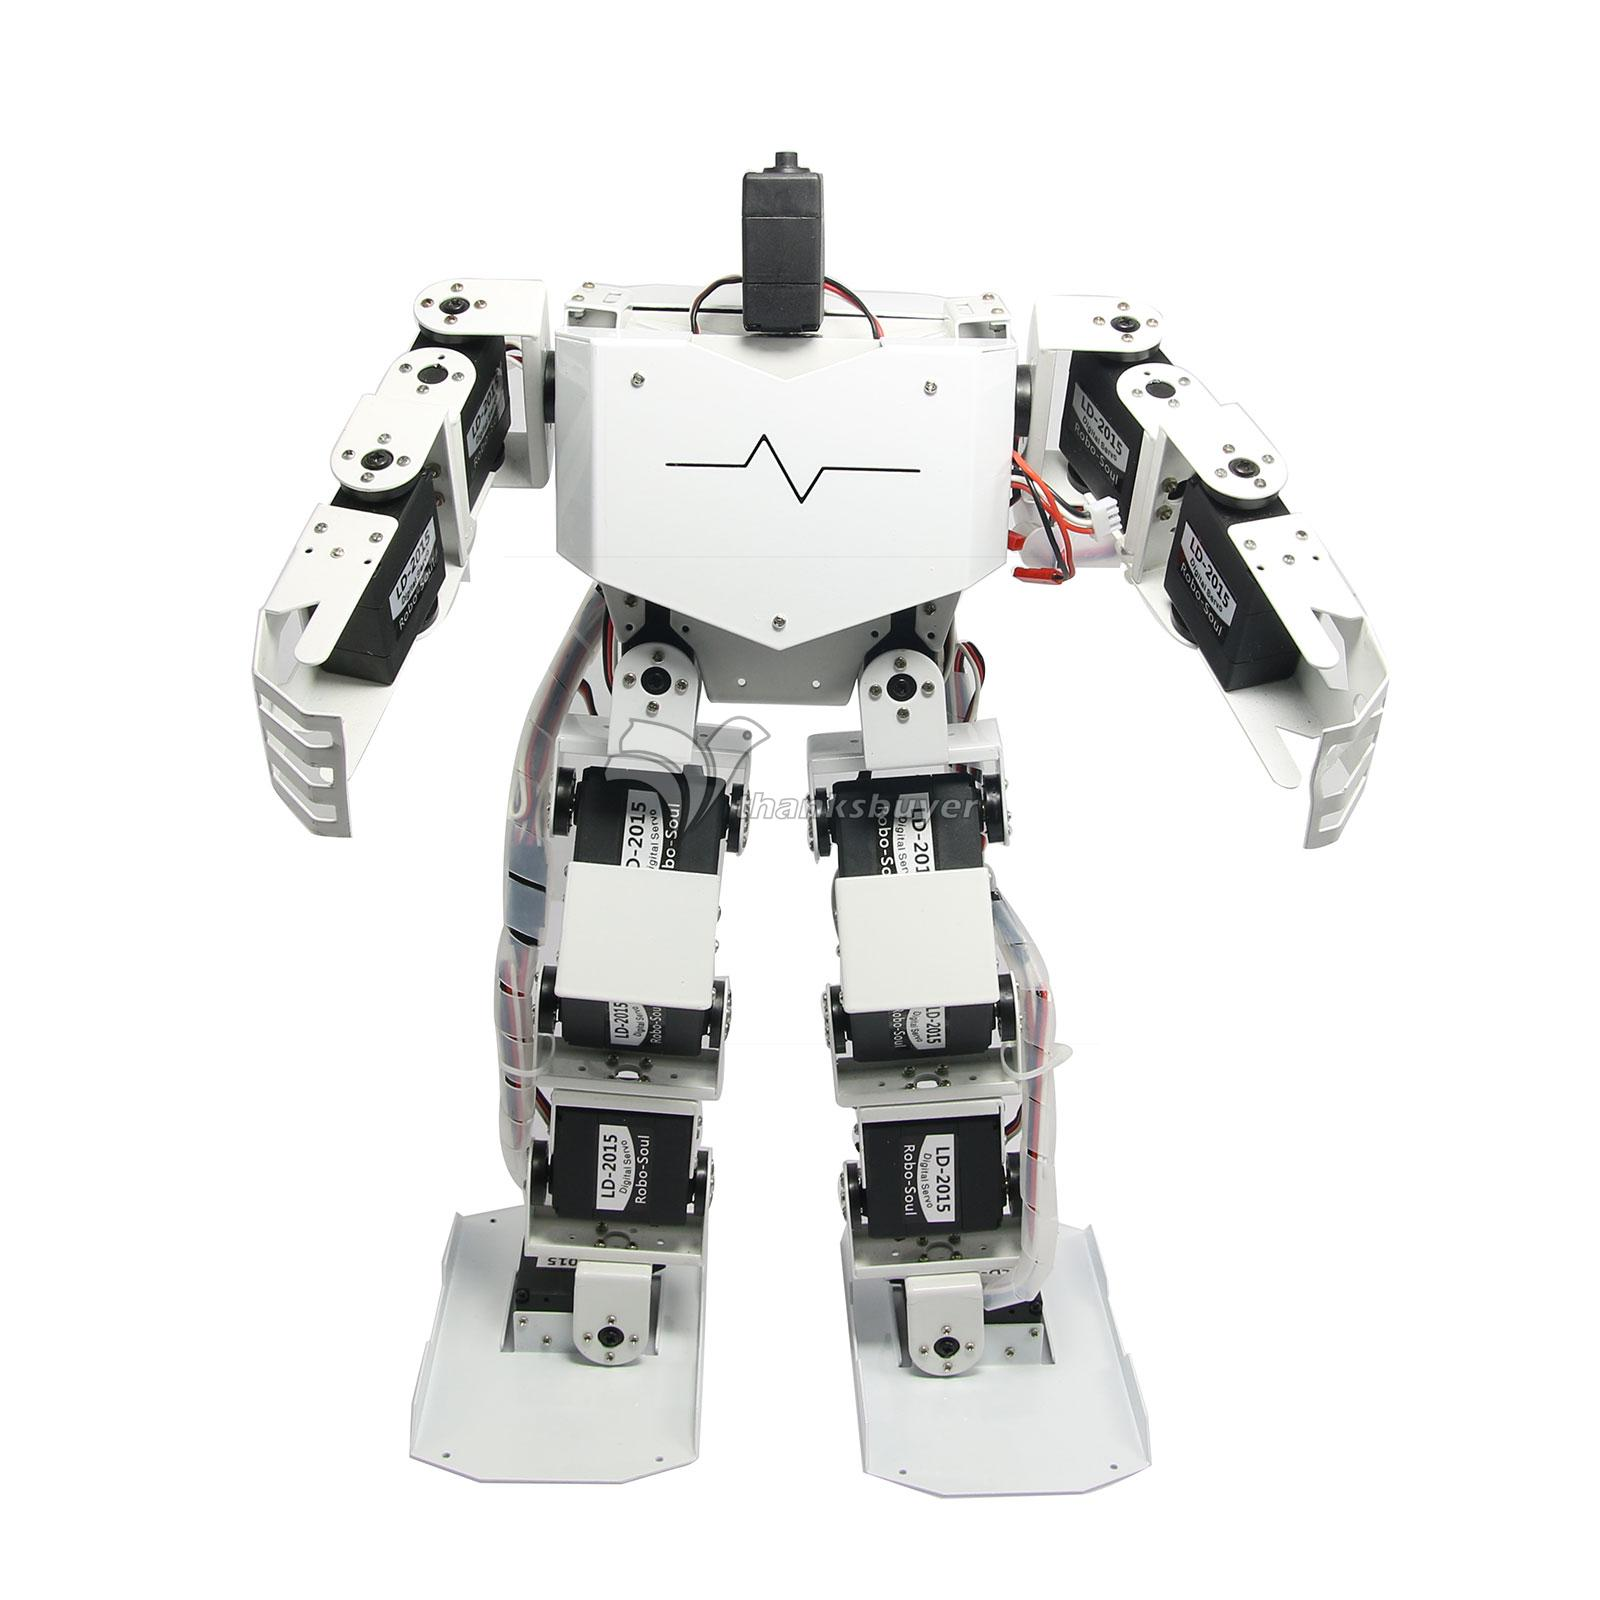 17DOF Robo-Soul H3.0 Biped Robotics Two-Legged Human Robot Aluminum Frame Kit Only No Servos White